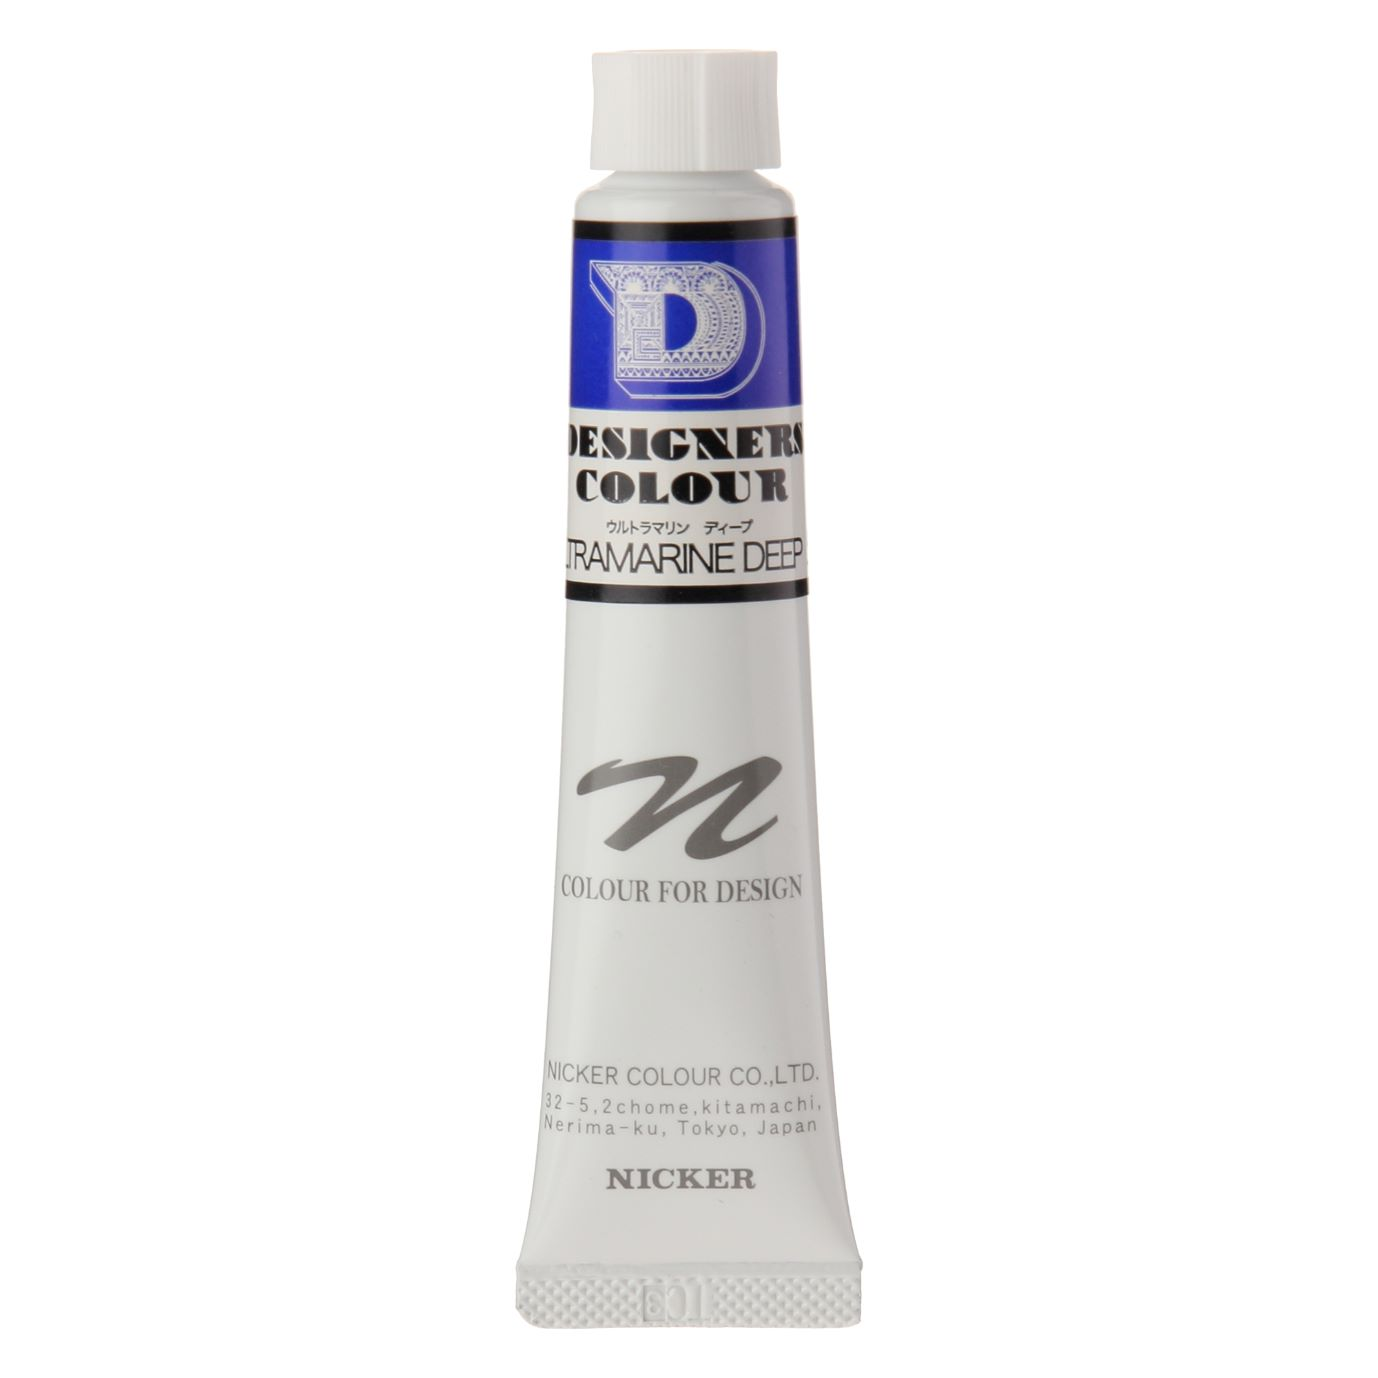 DESIGNERS COLOUR 20ml 534 ULTRAMARINE DEEP